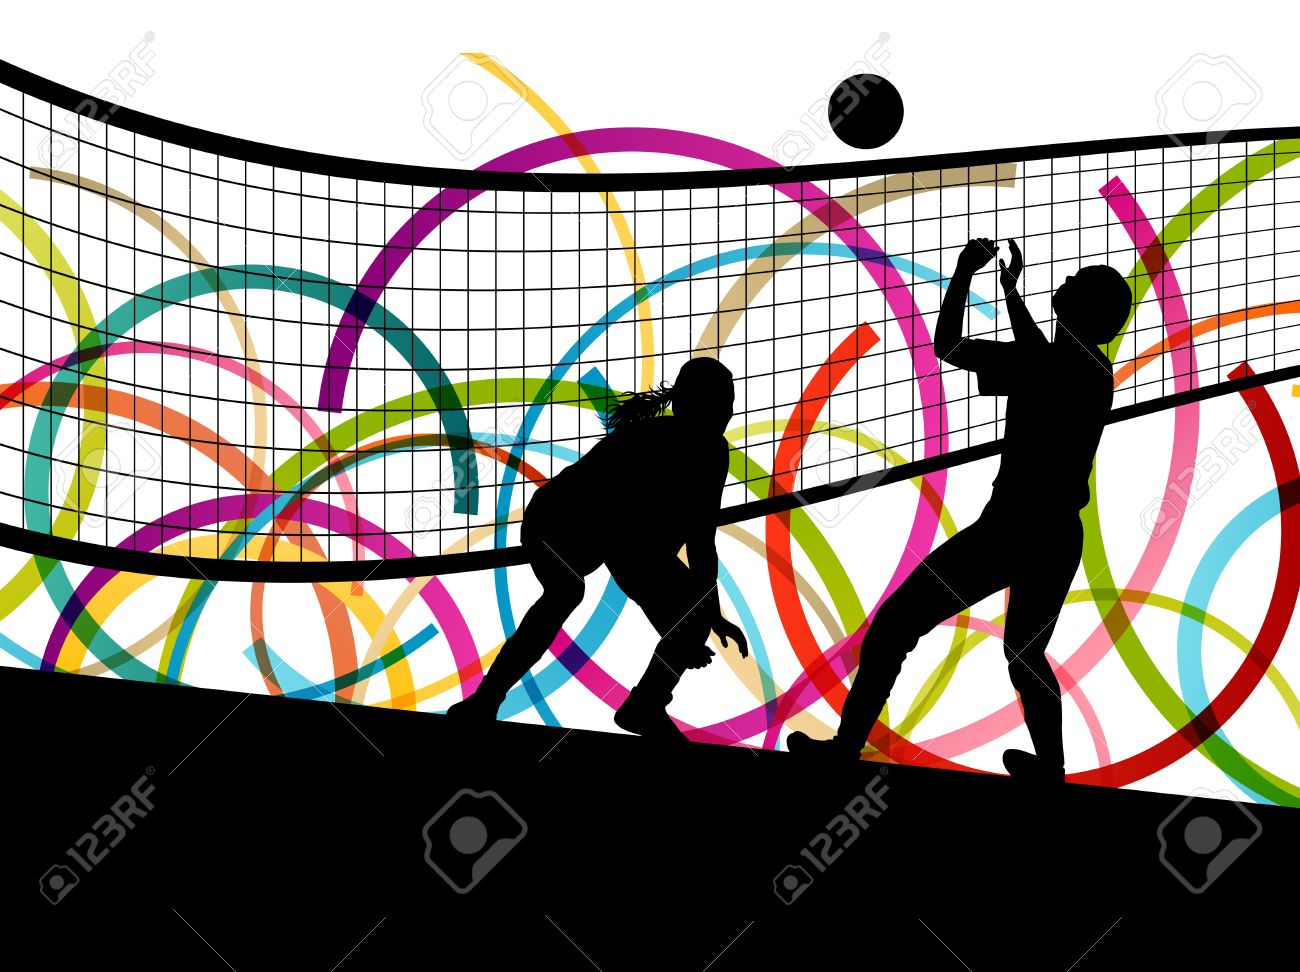 Active young women volleyball player sport silhouettes in abstract color background illustration vector - 35691374